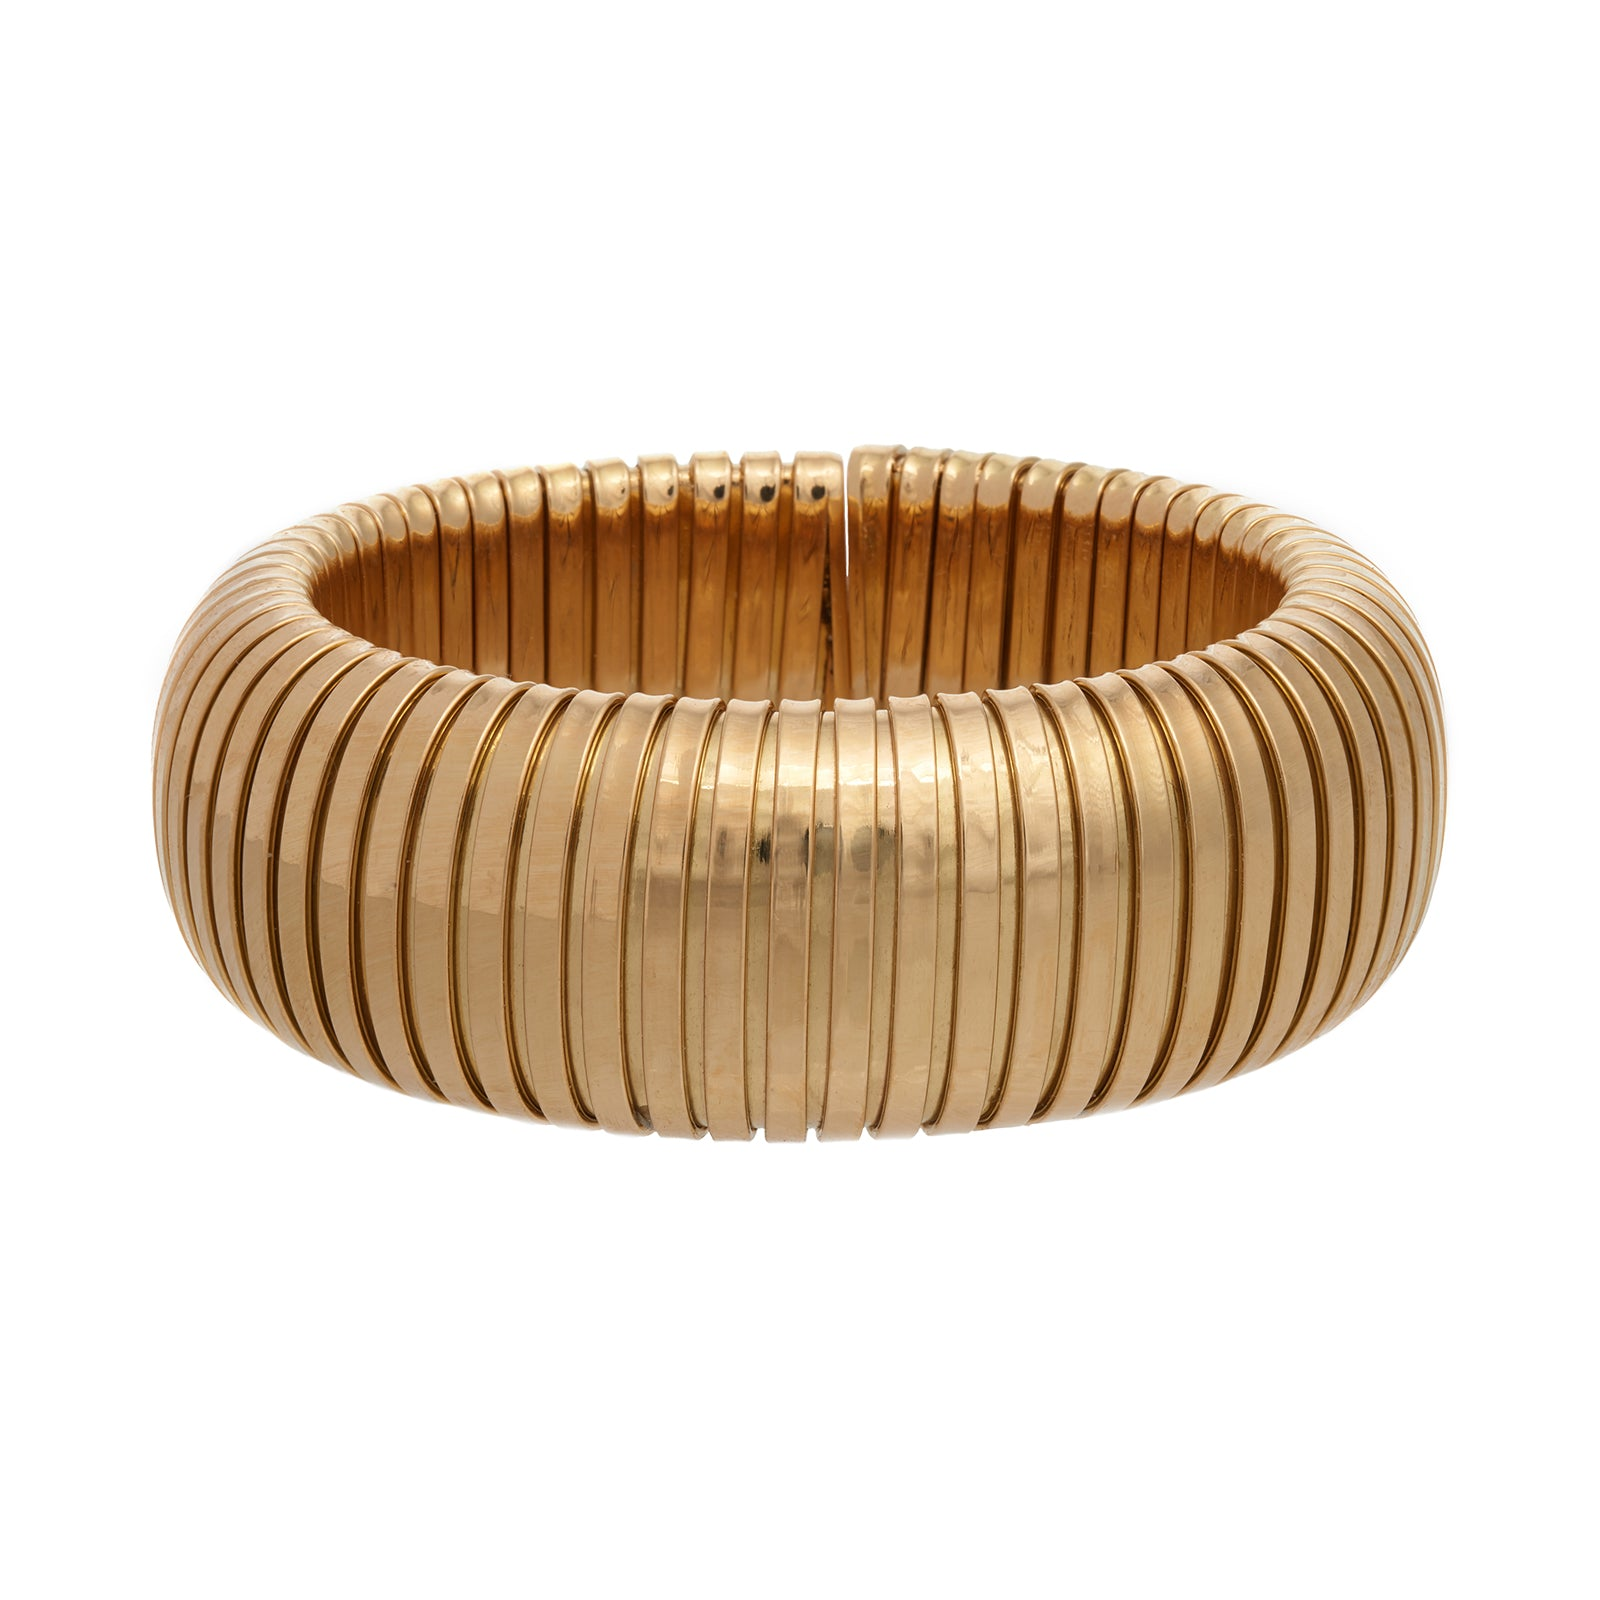 Sidney Garber Domed Cuff - Yellow Gold - Bracelets - Broken English Jewelry